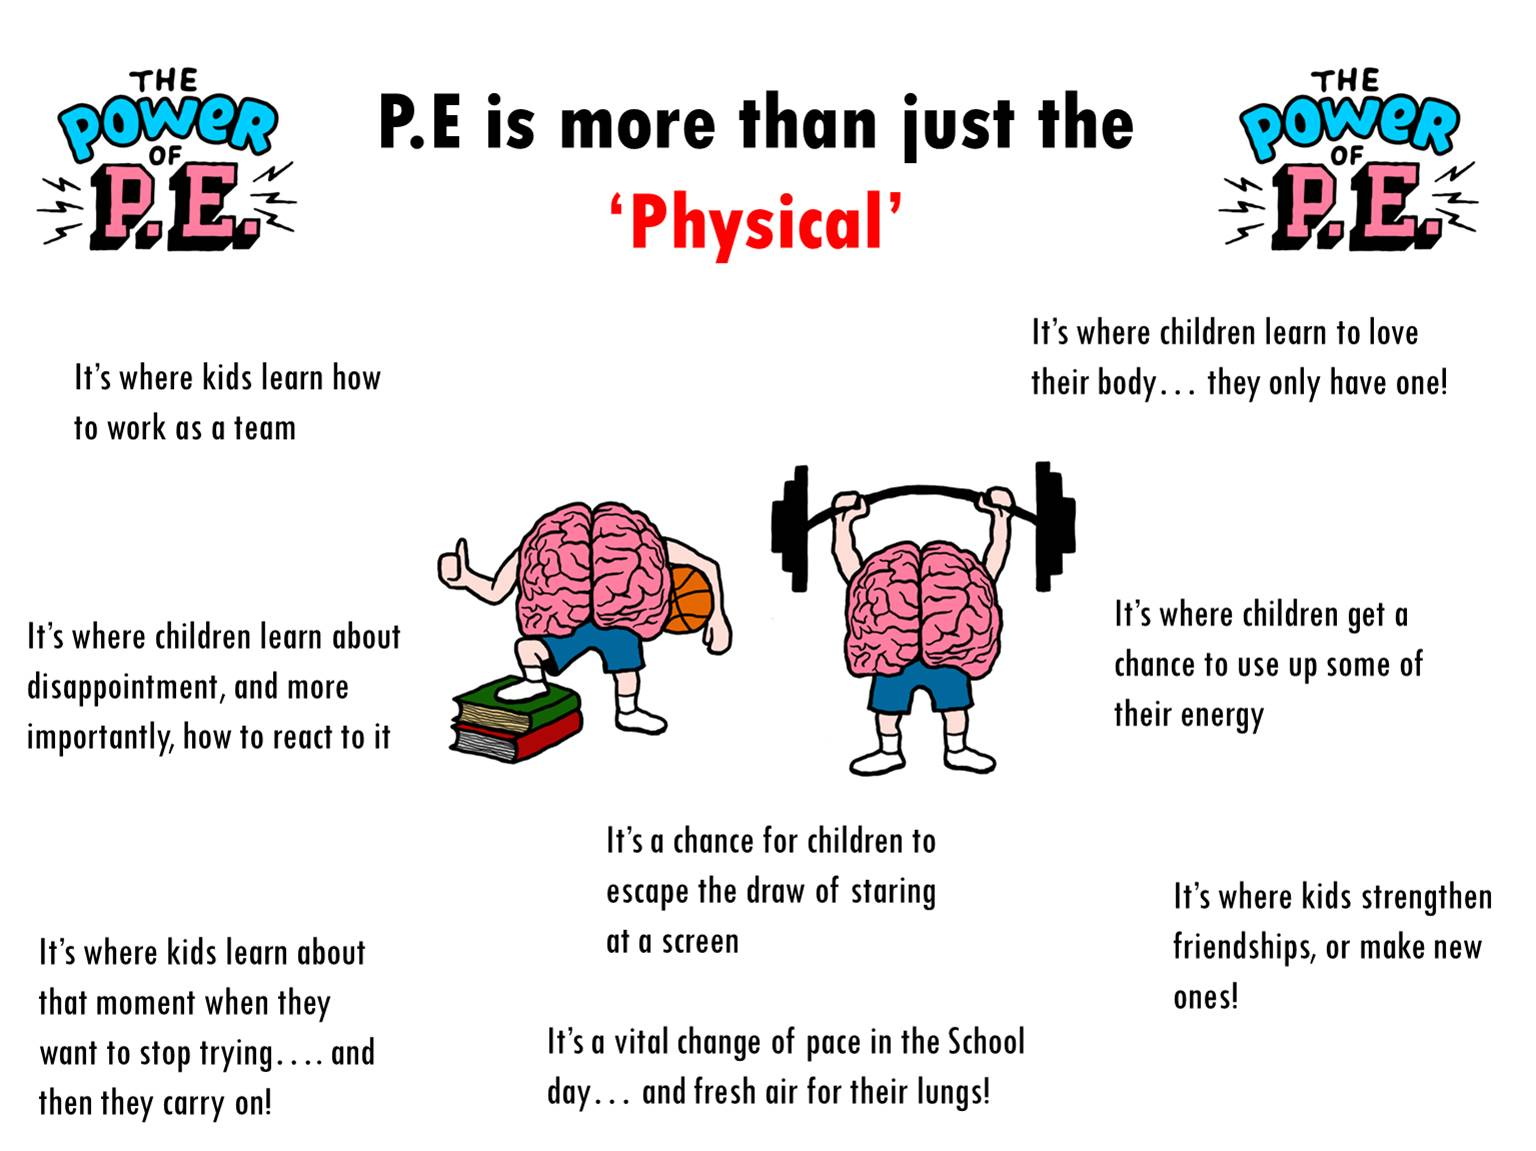 Power of P.E More than physical poster